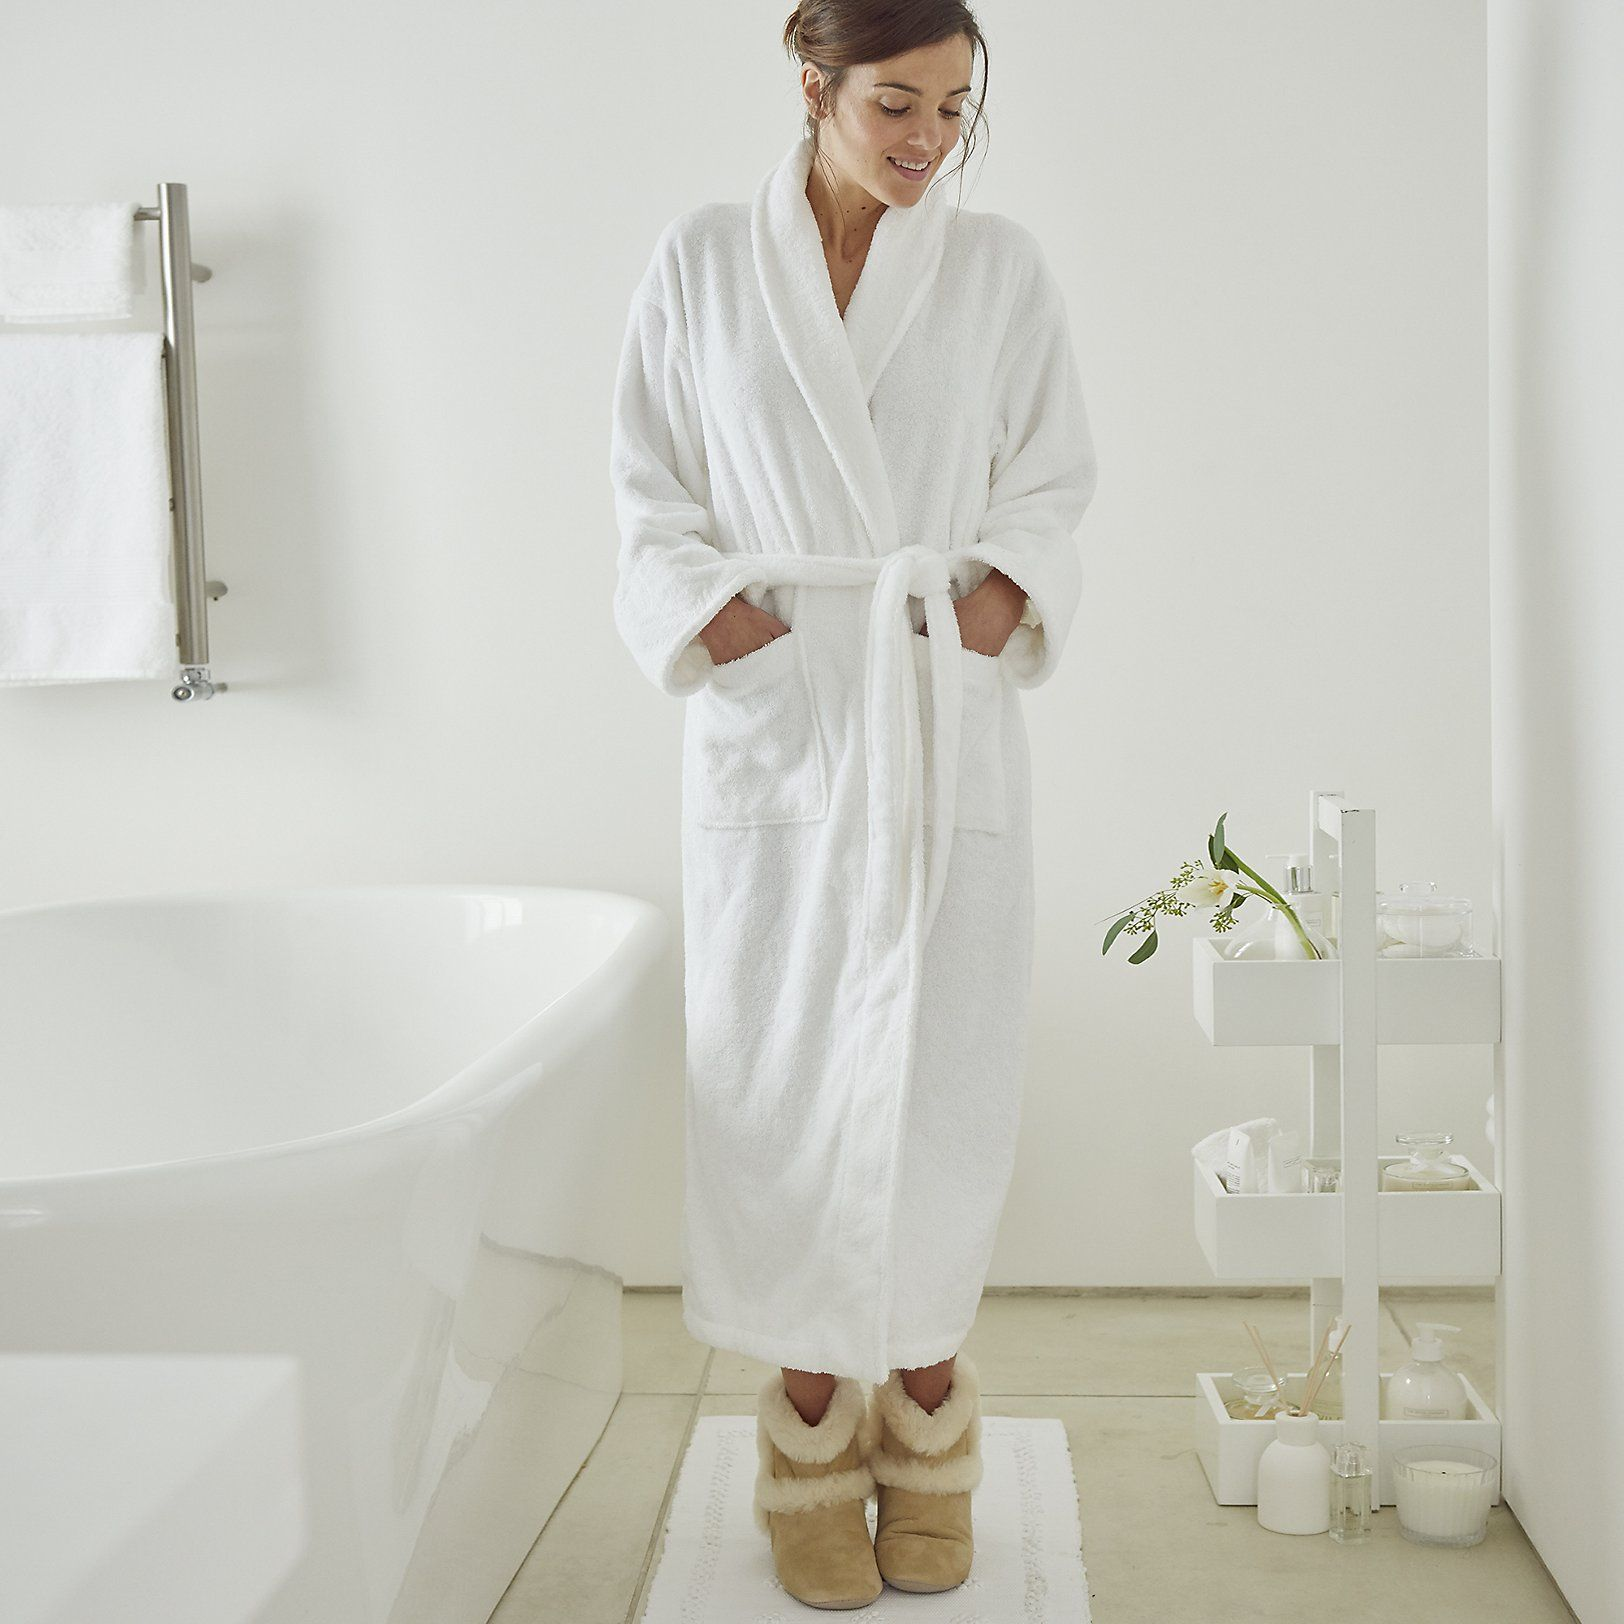 White company dressing gown | BLOG REVIEW | Pinterest | White ...